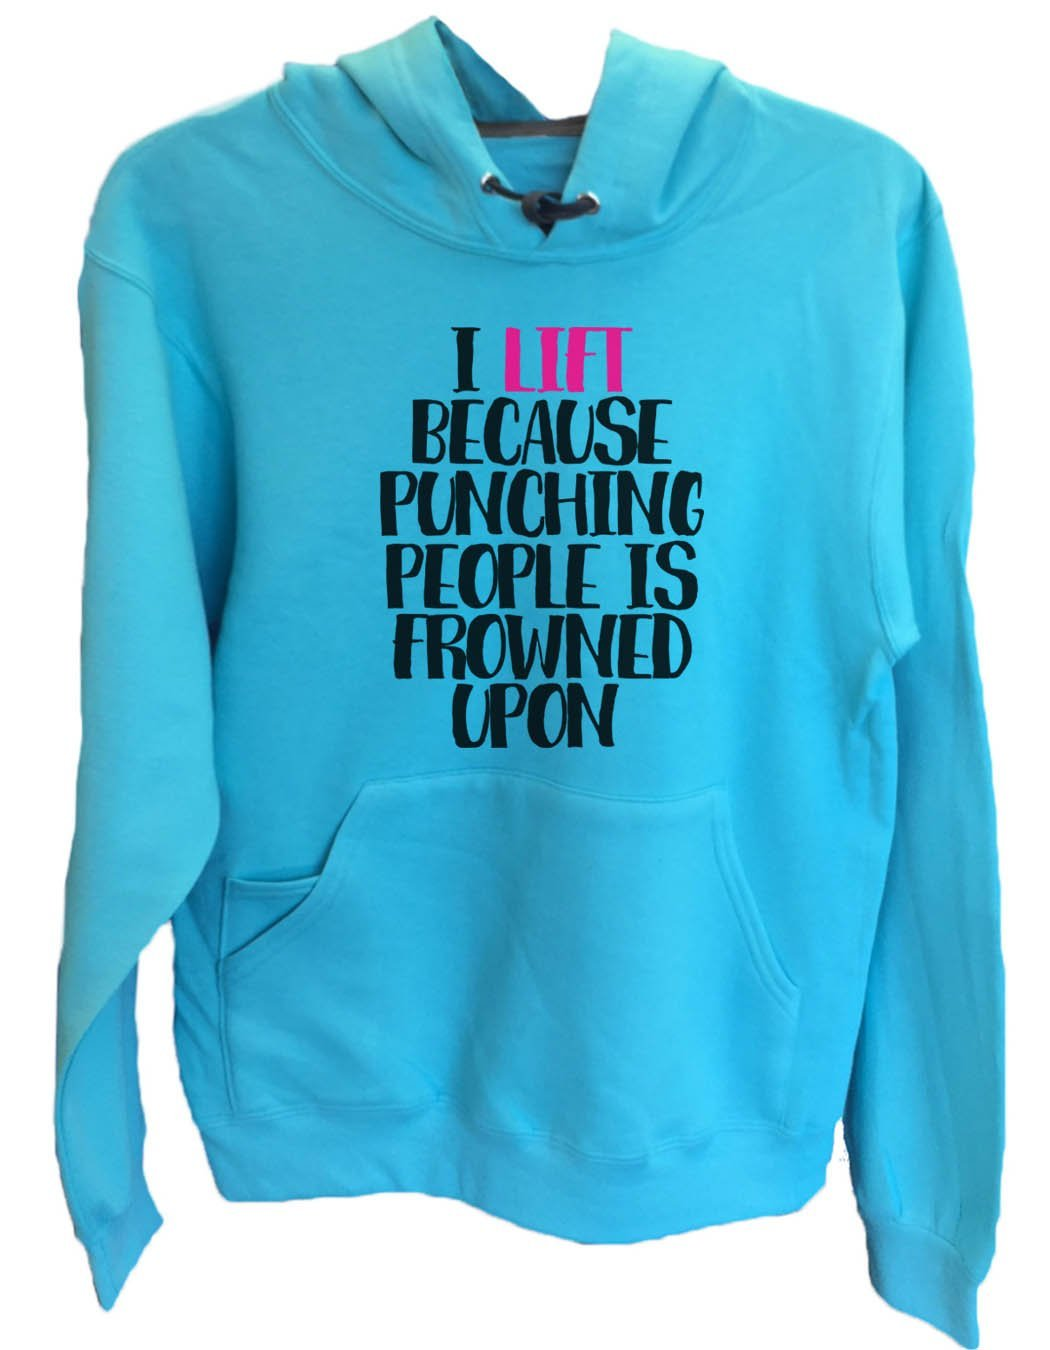 UNISEX HOODIE - I Lift because punching people is frowned upon - FUNNY MENS AND WOMENS HOODED SWEATSHIRTS - 2109 Funny Shirt Small / Turquoise